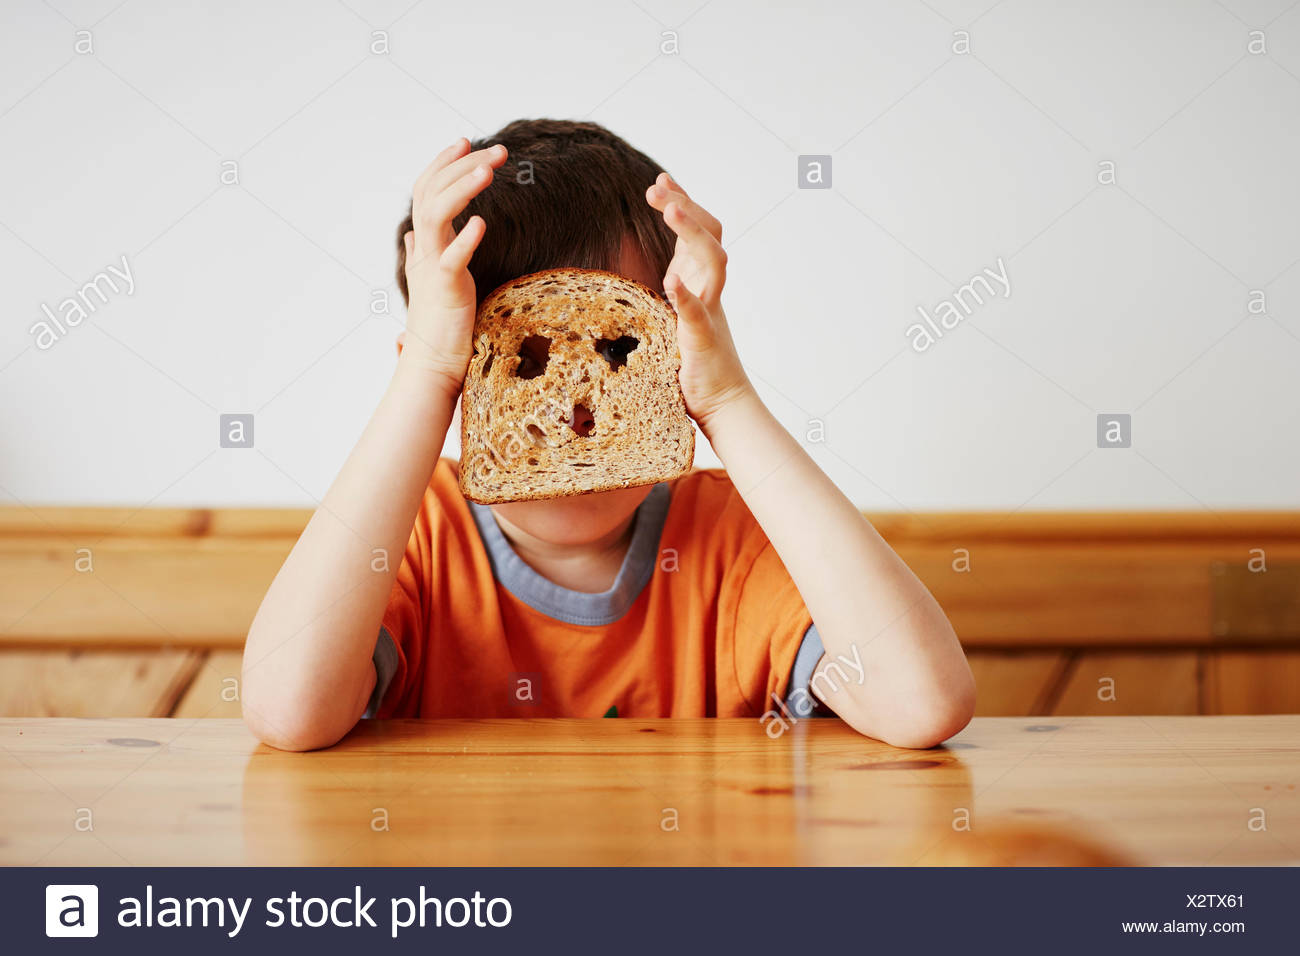 Young boy covering face with toast - Stock Image